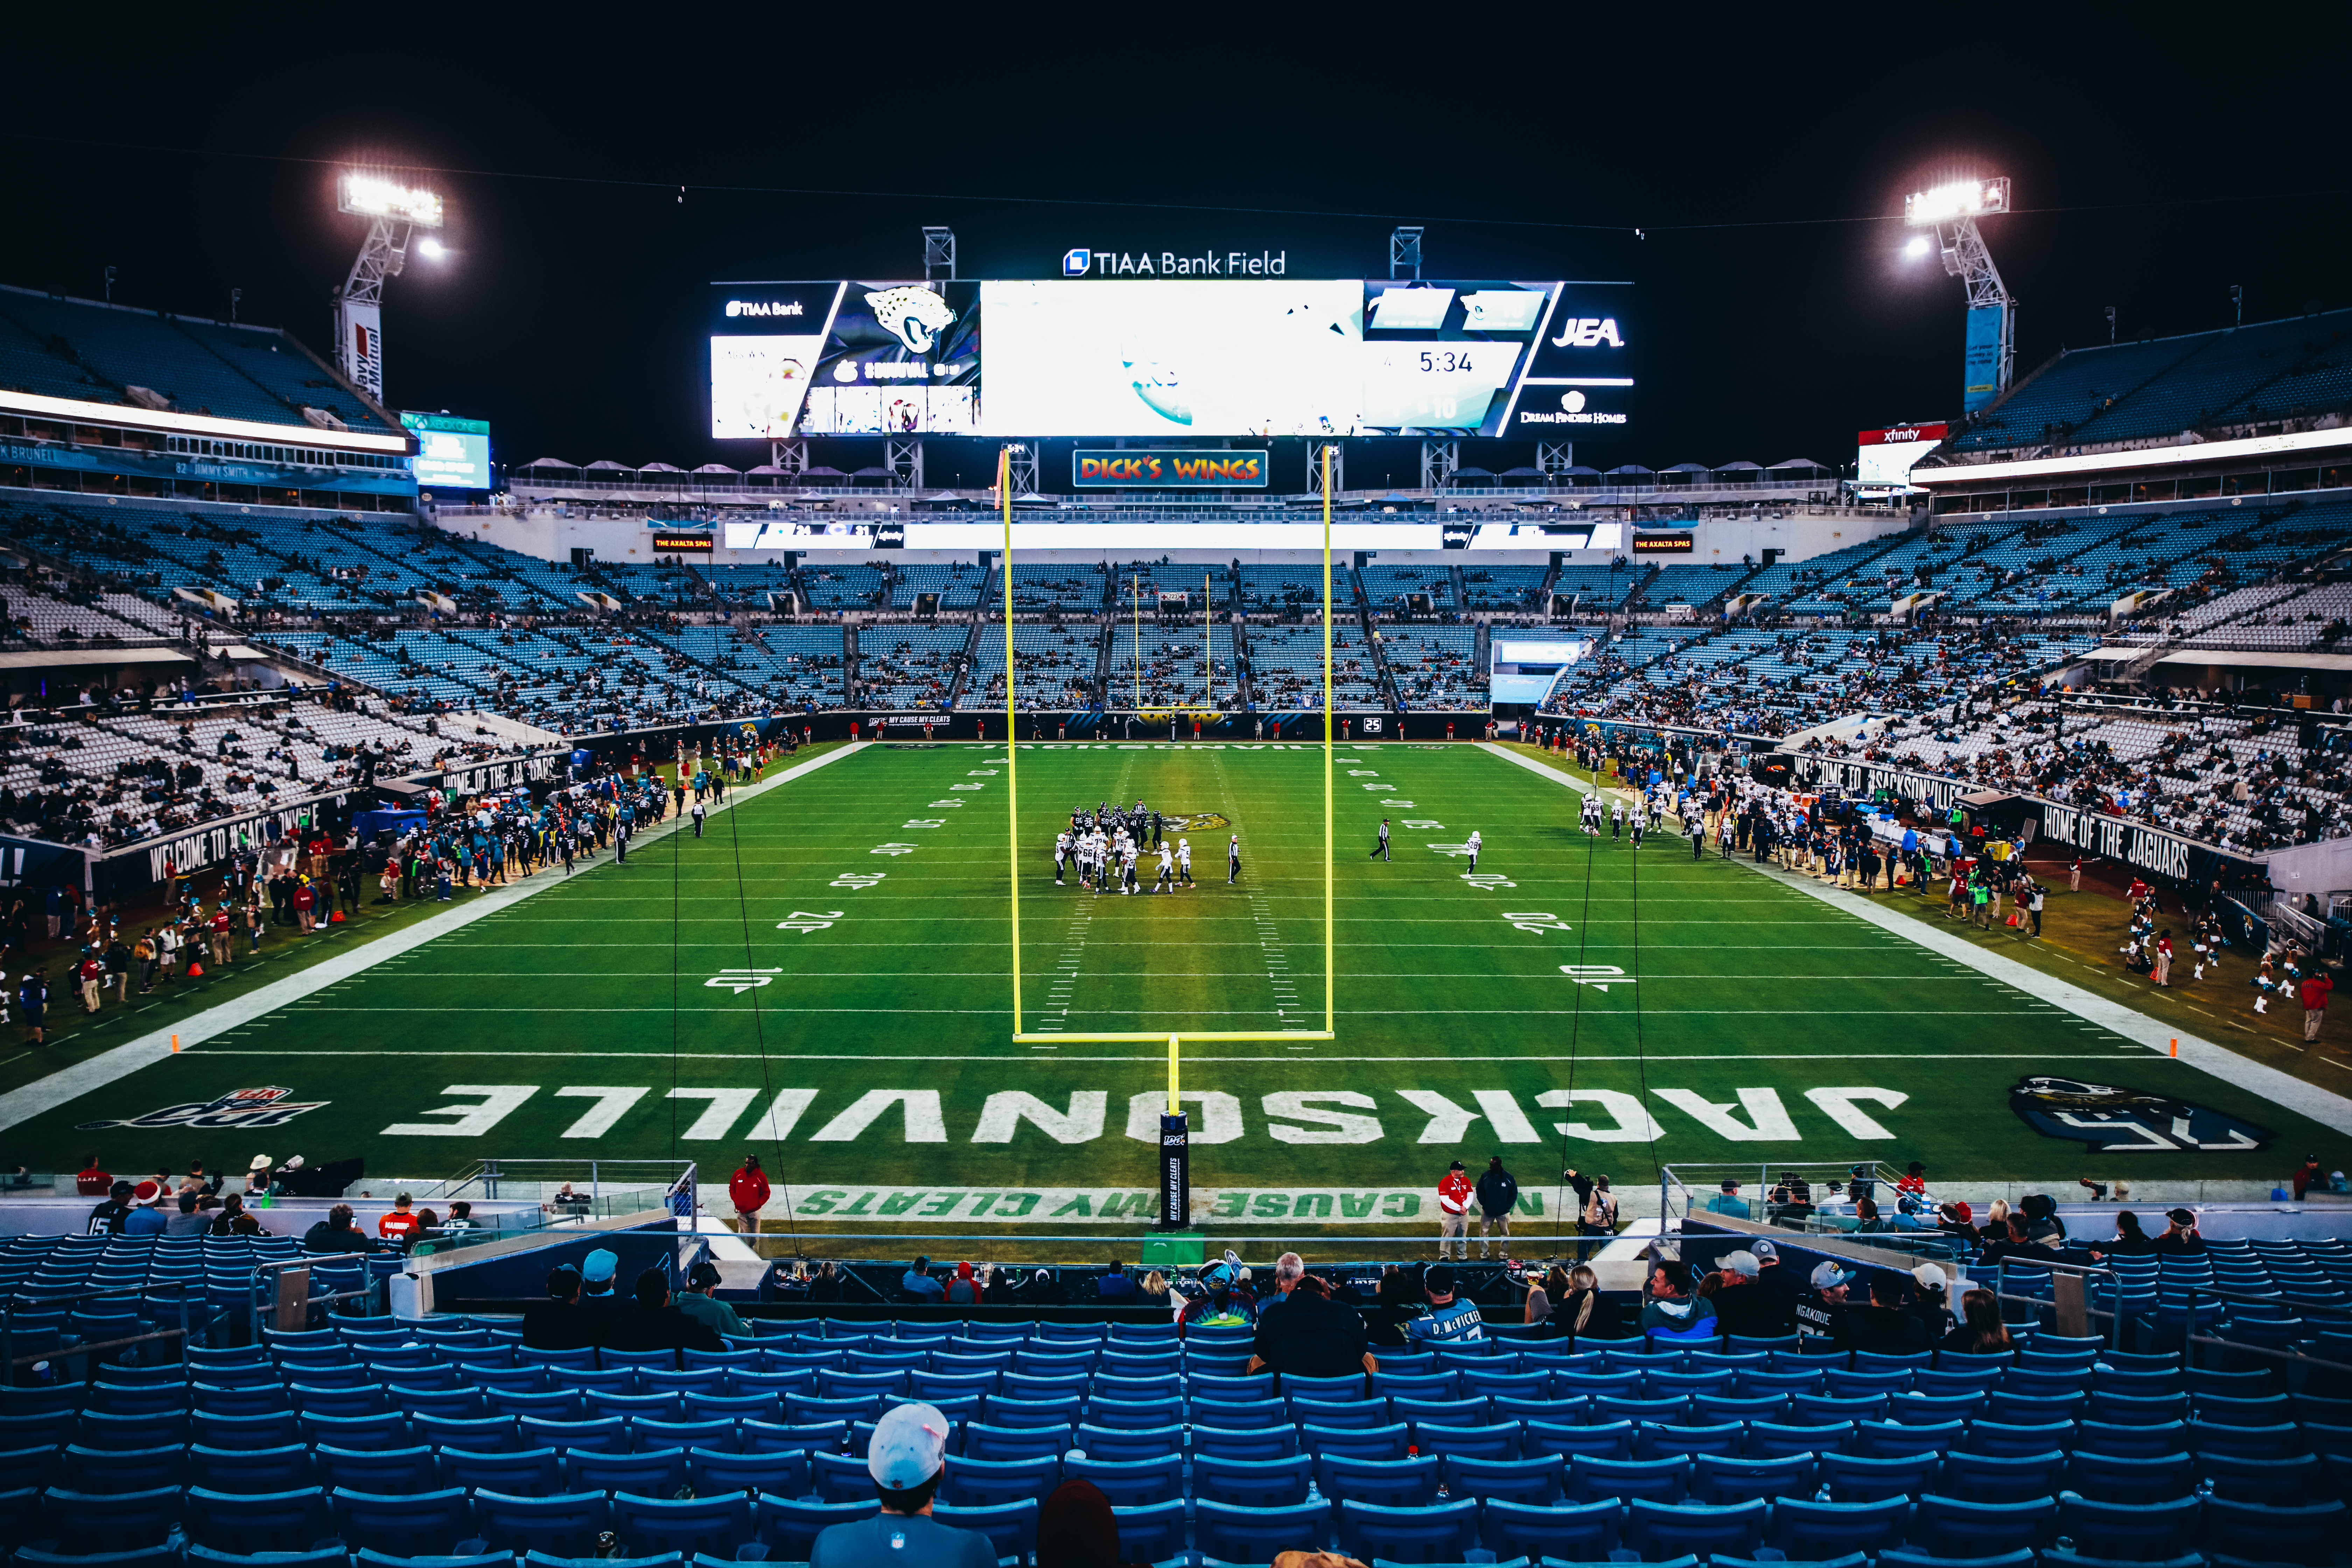 The crowd dwindles as the Jacksonville Jaguars take on the Los Angeles Chargers in the fourth quarter at TIAA Bank Field on December 08, 2019 in Jacksonville, Florida.